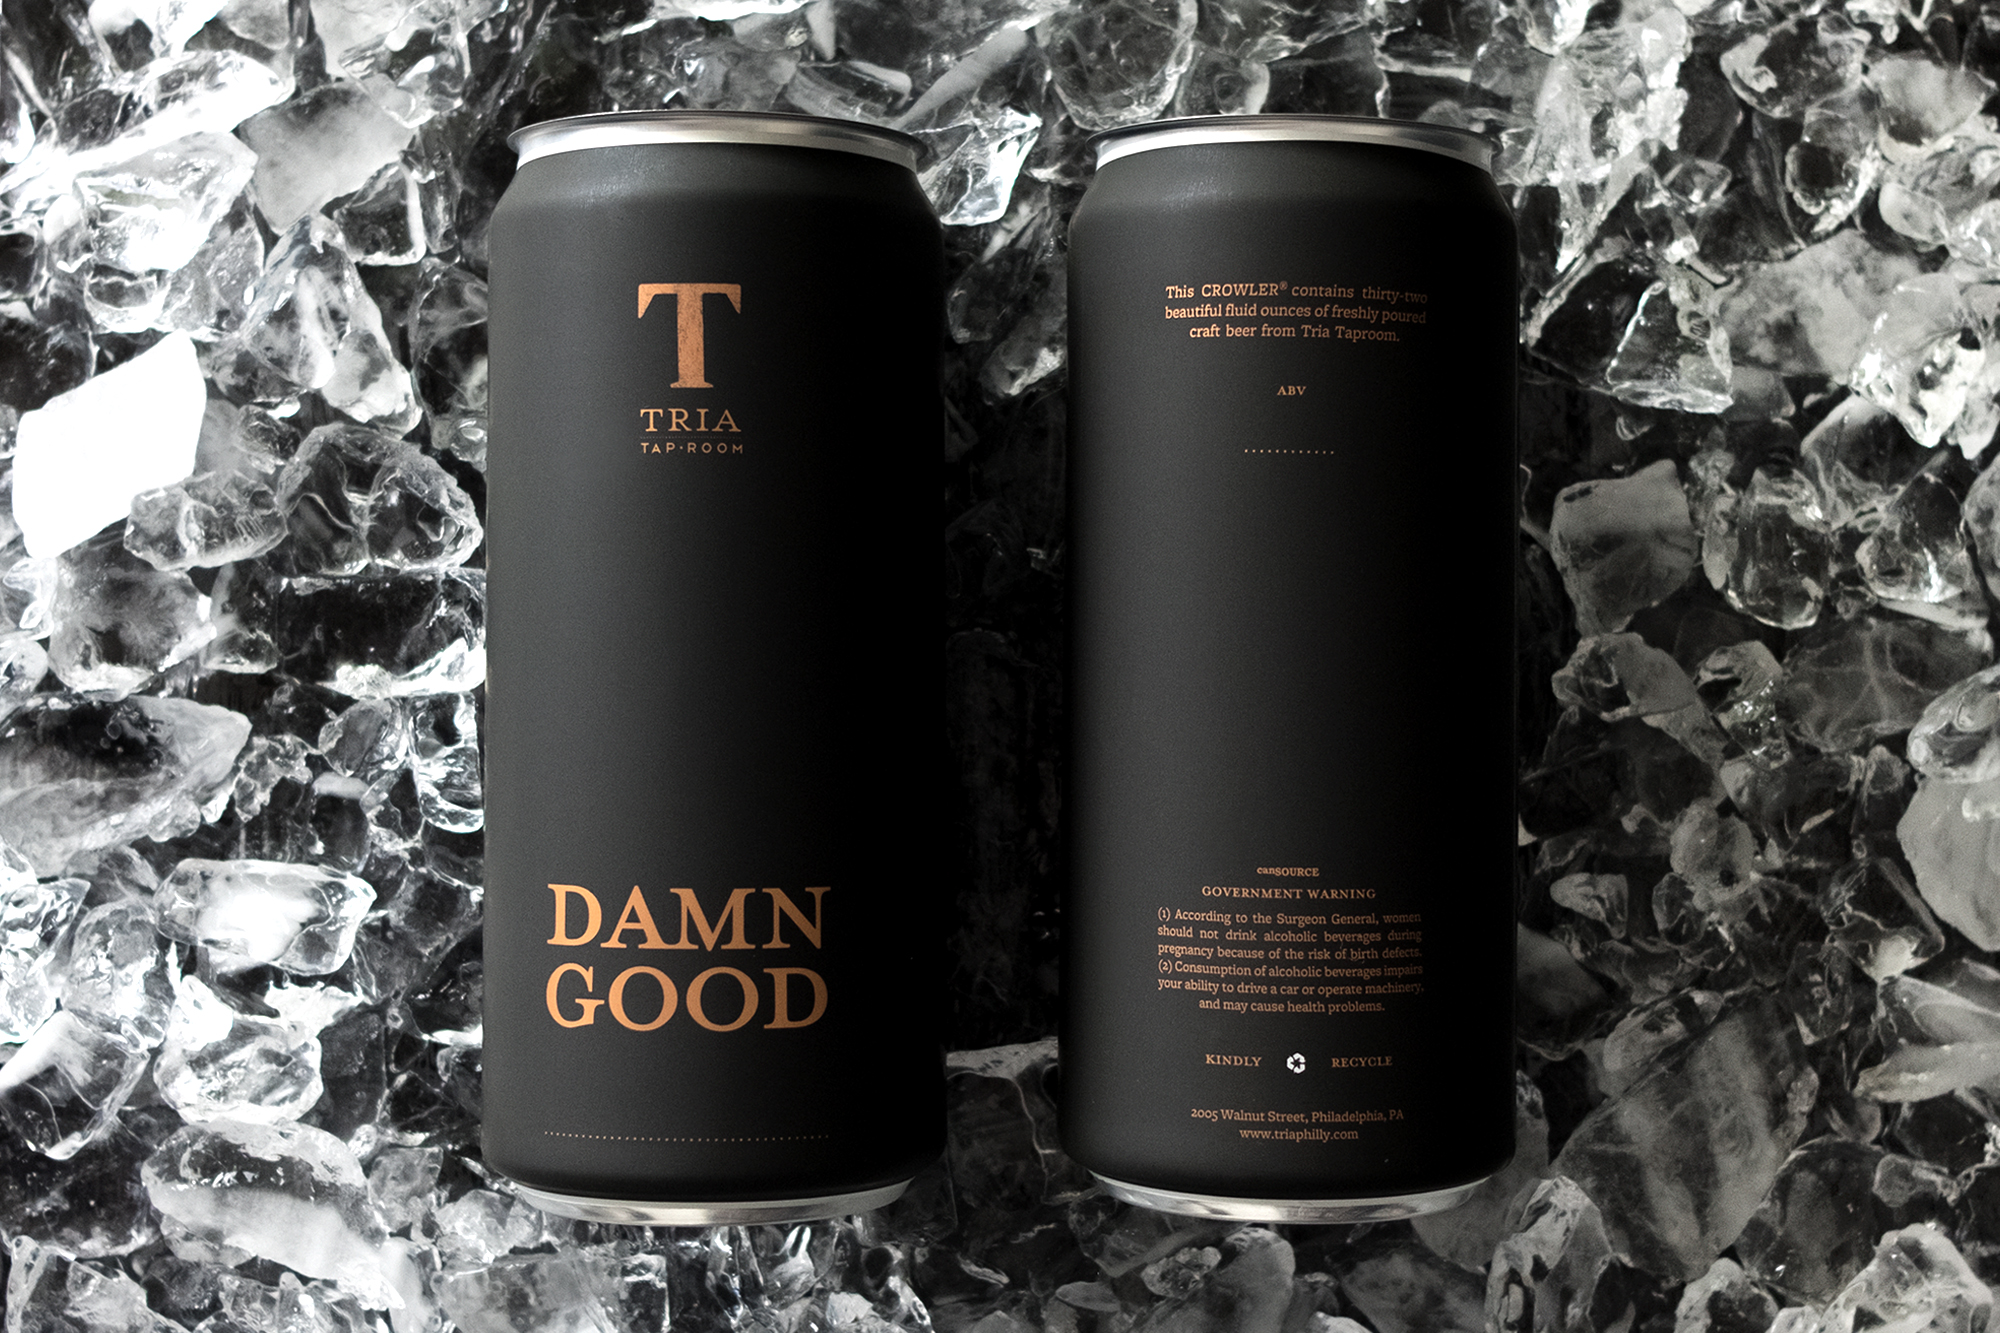 tria_taproom_beer_can_design_julieeckertdesign_01.jpg